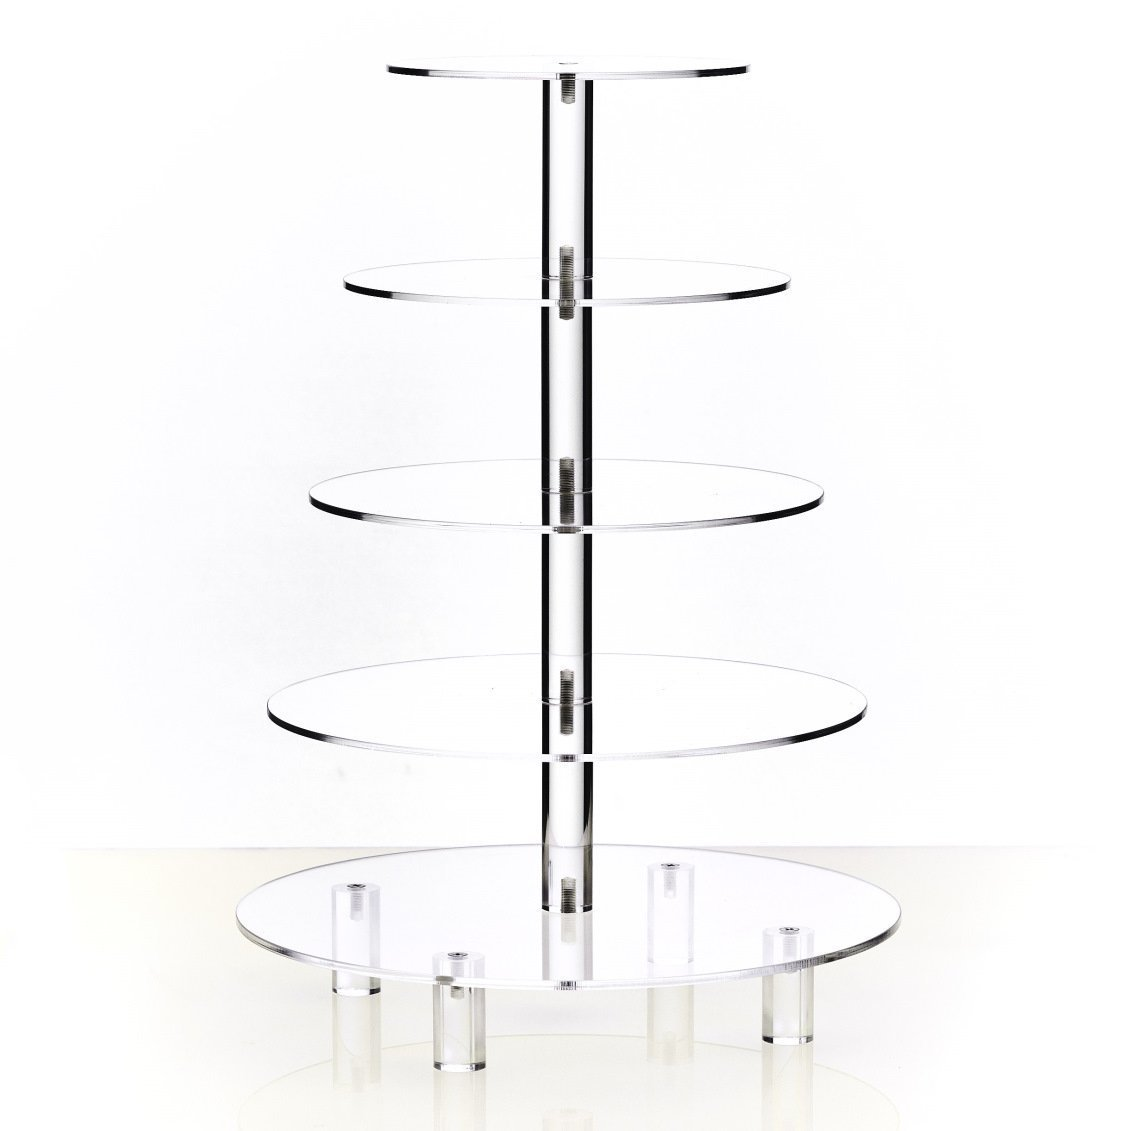 Hayley Cherie 5-Tier Round Cupcake Stand - Acrylic Tiered Cake Stand - Dessert or Cupcake Tower by Hayley Cherie